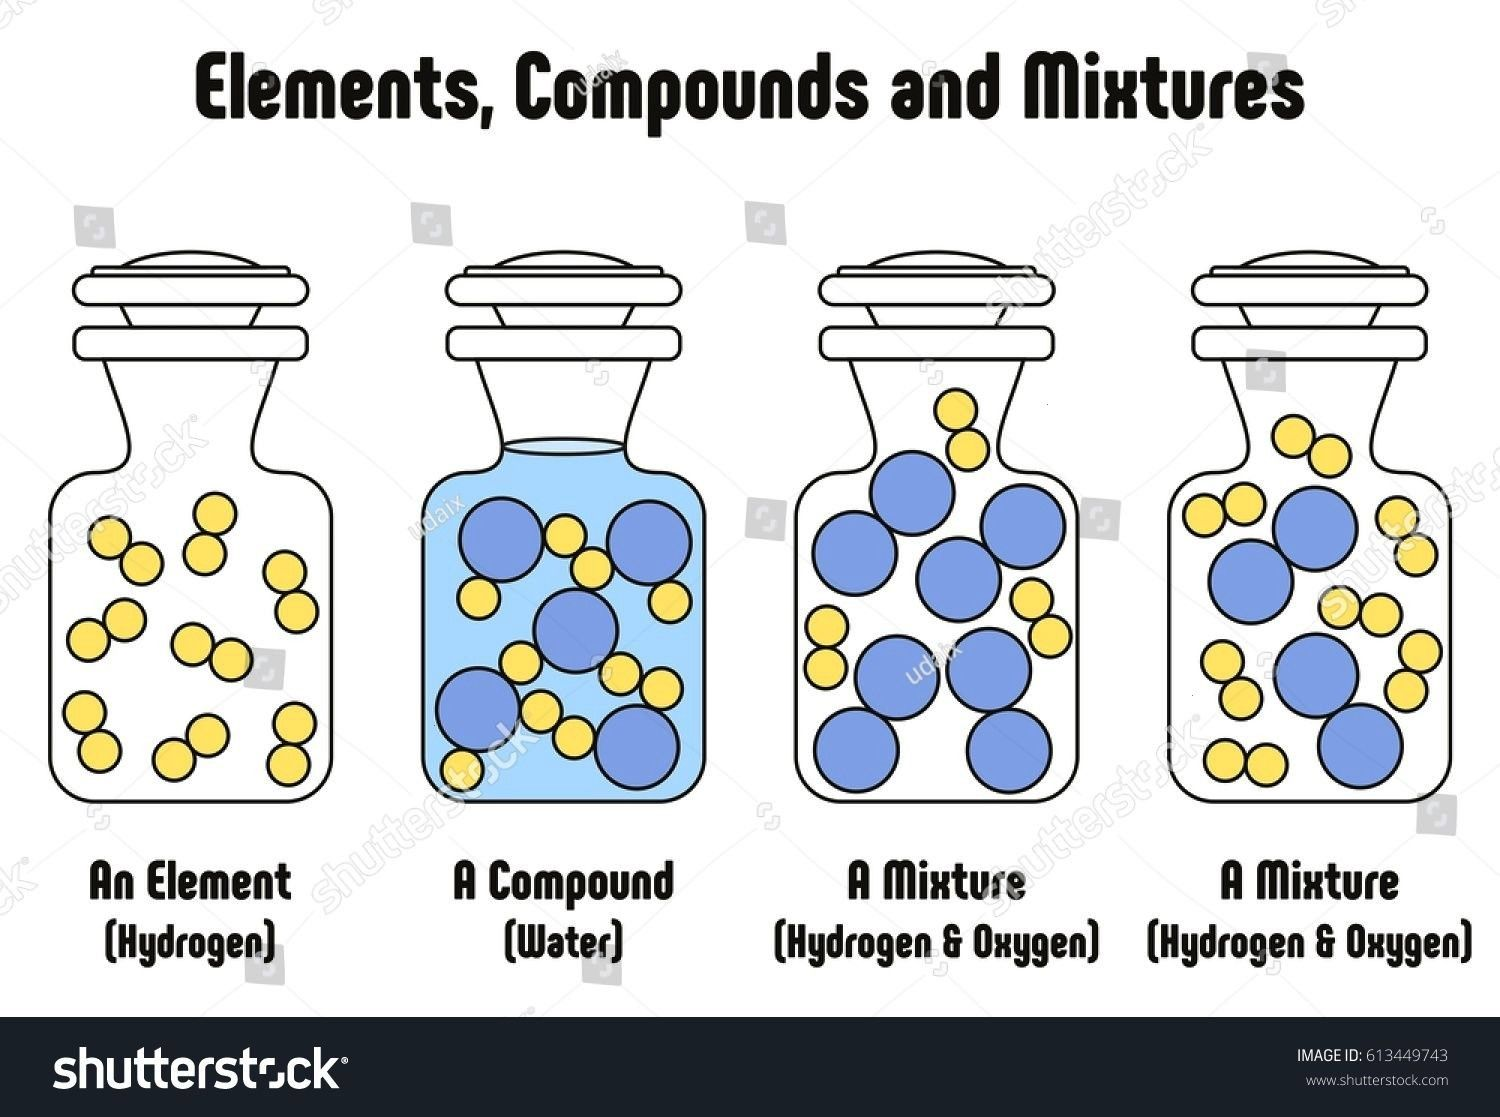 Between Elements Compounds and Mixtures with example of hydrogen element water compound and mixture of hydrogen and oxygen physical matter state for science education Dif...